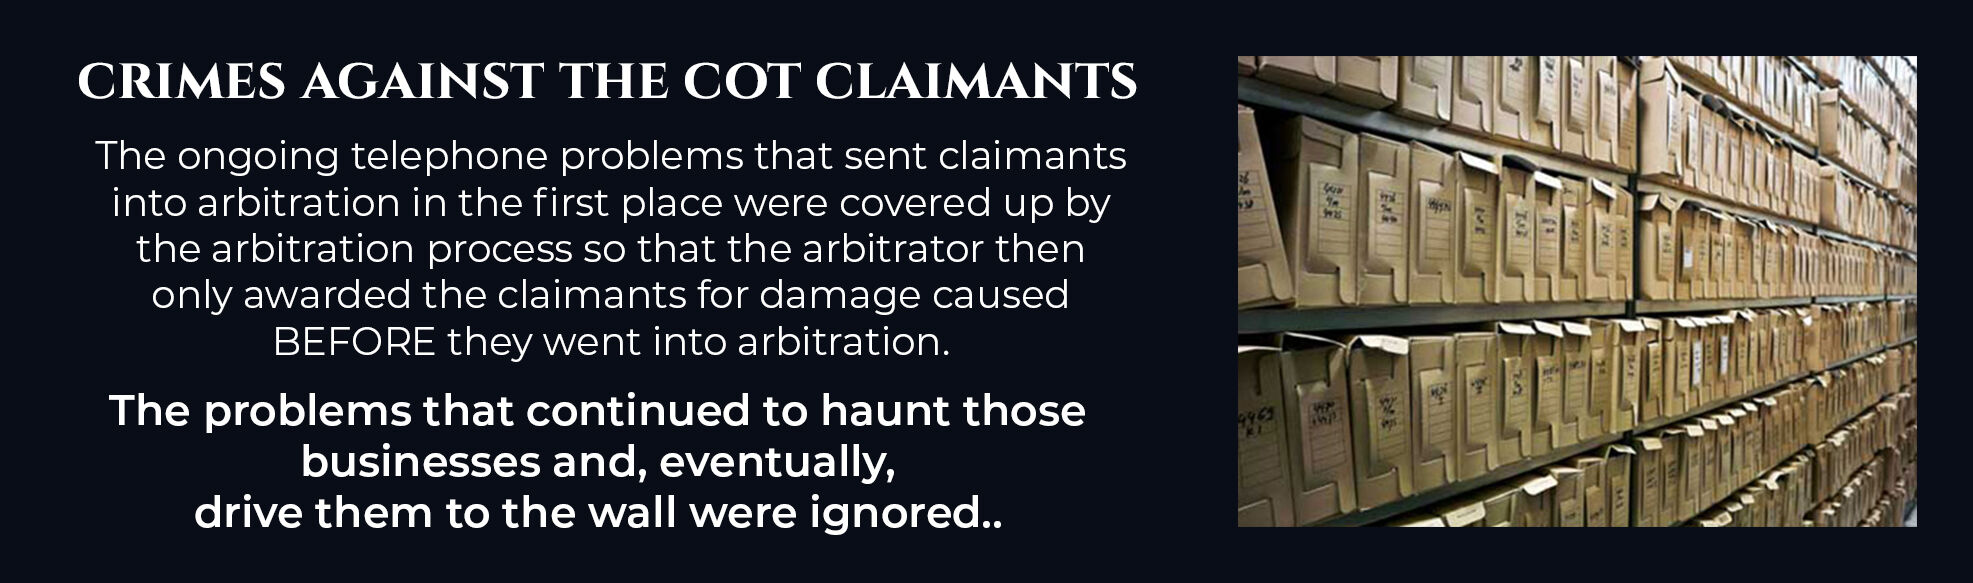 Absent Justice - Crimes Against the COT claimants